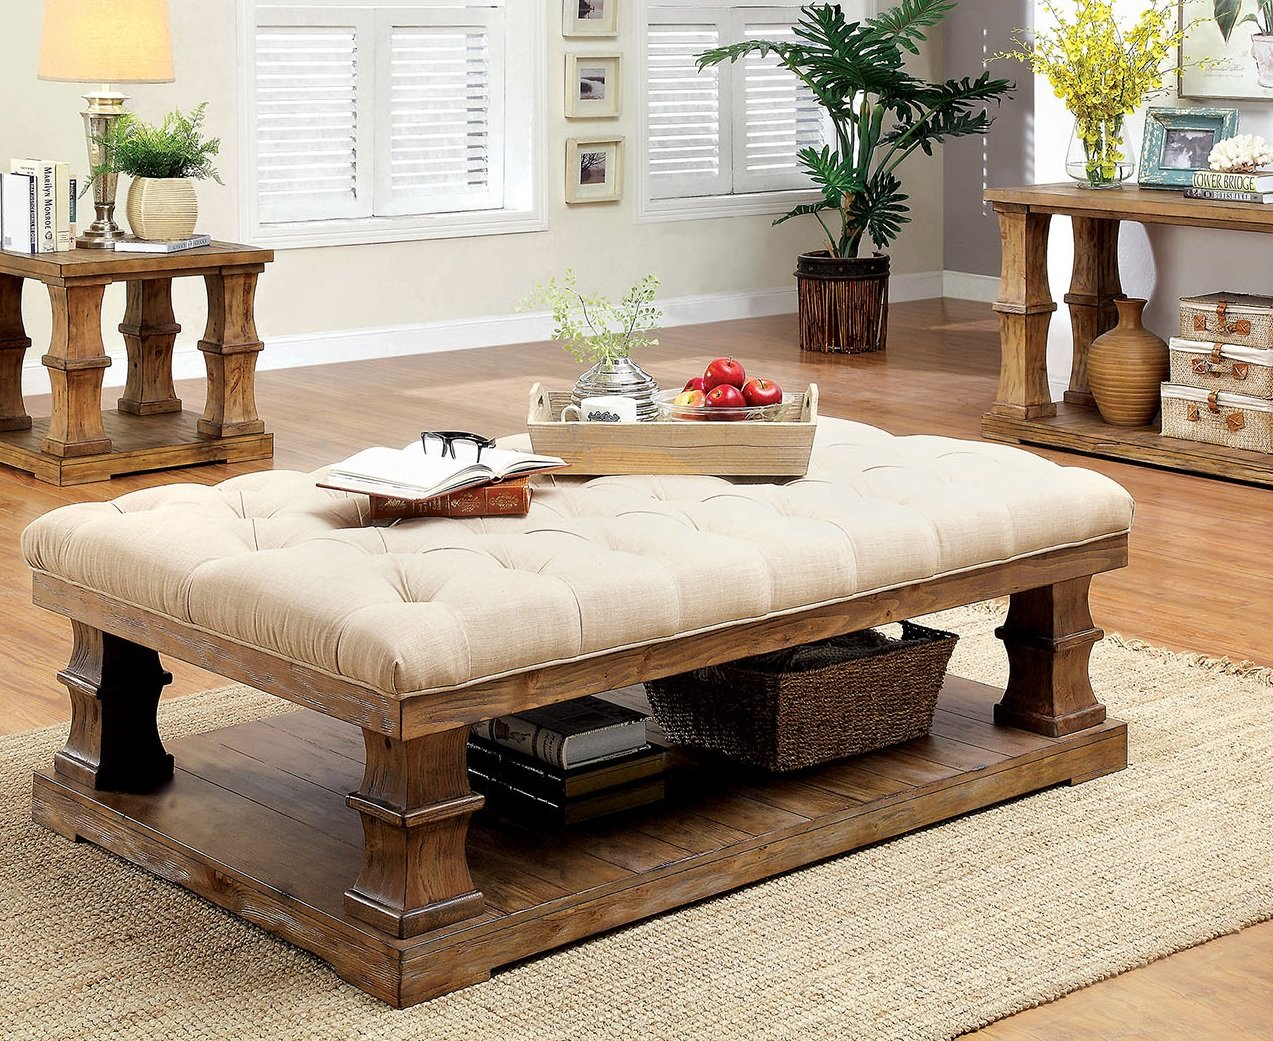 Gracie Oaks Charlotte Coffee Table With Cushion Top Wayfair in dimensions 1273 X 1041